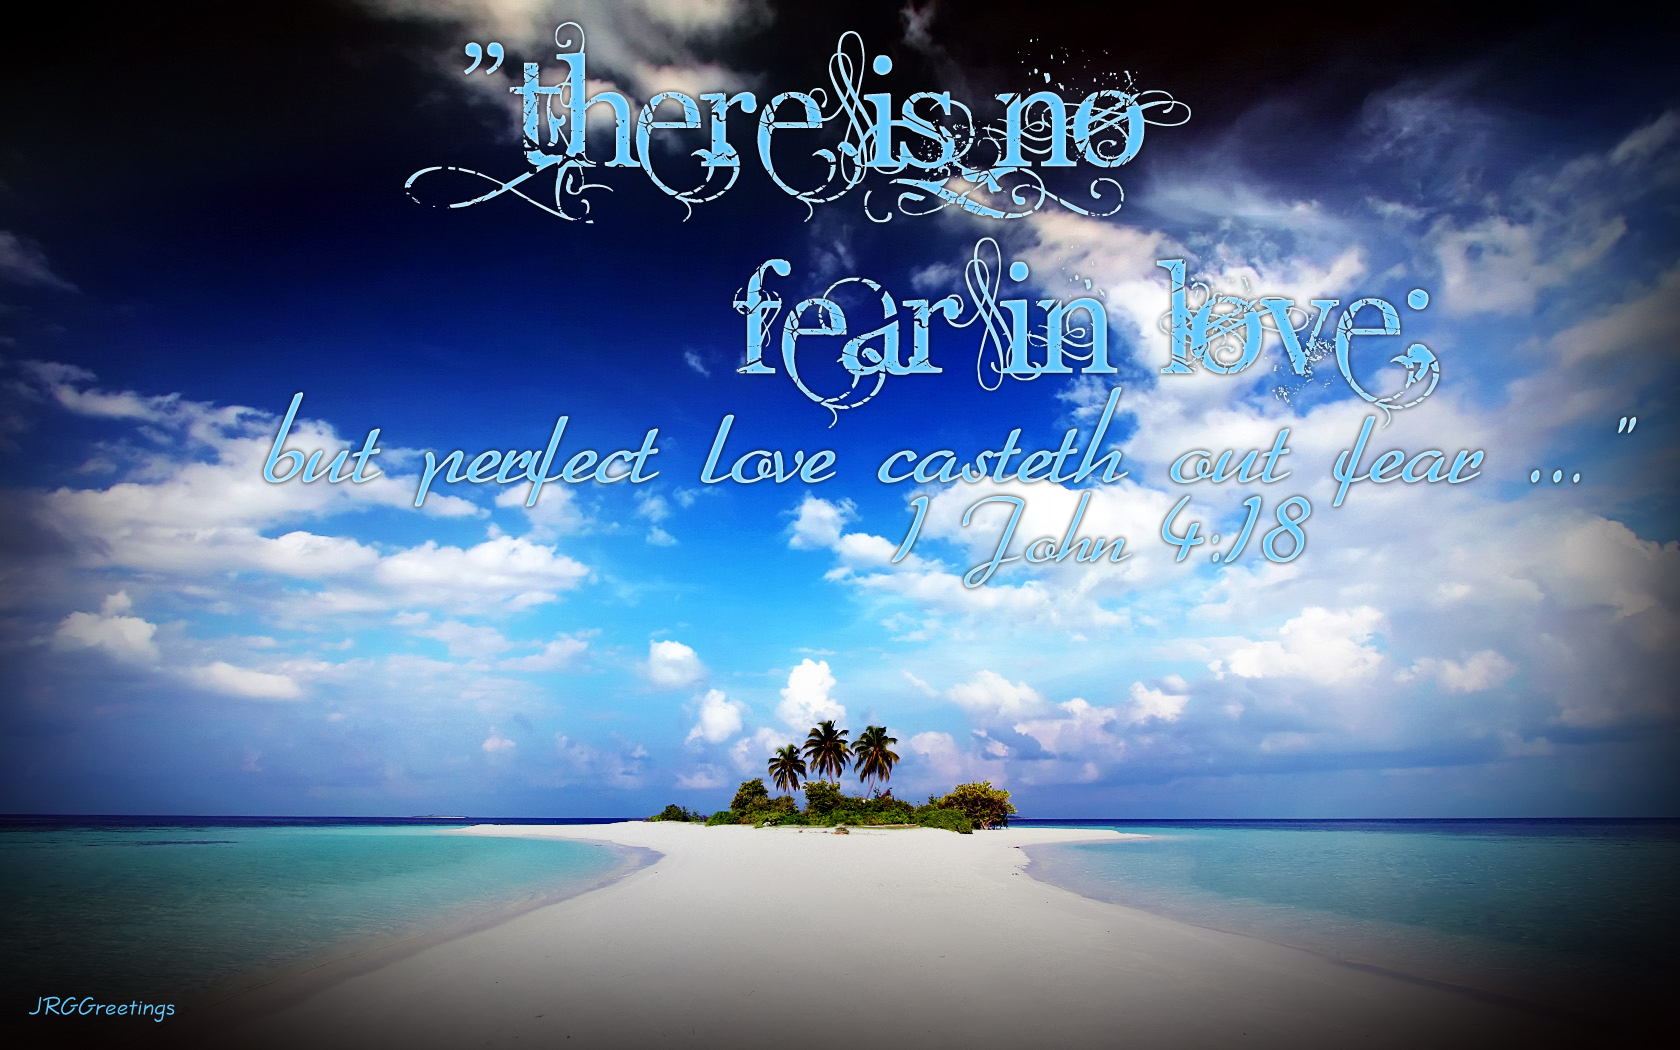 Love Drives Out Fear Wallpaper   Christian Wallpapers and Backgrounds 1680x1050